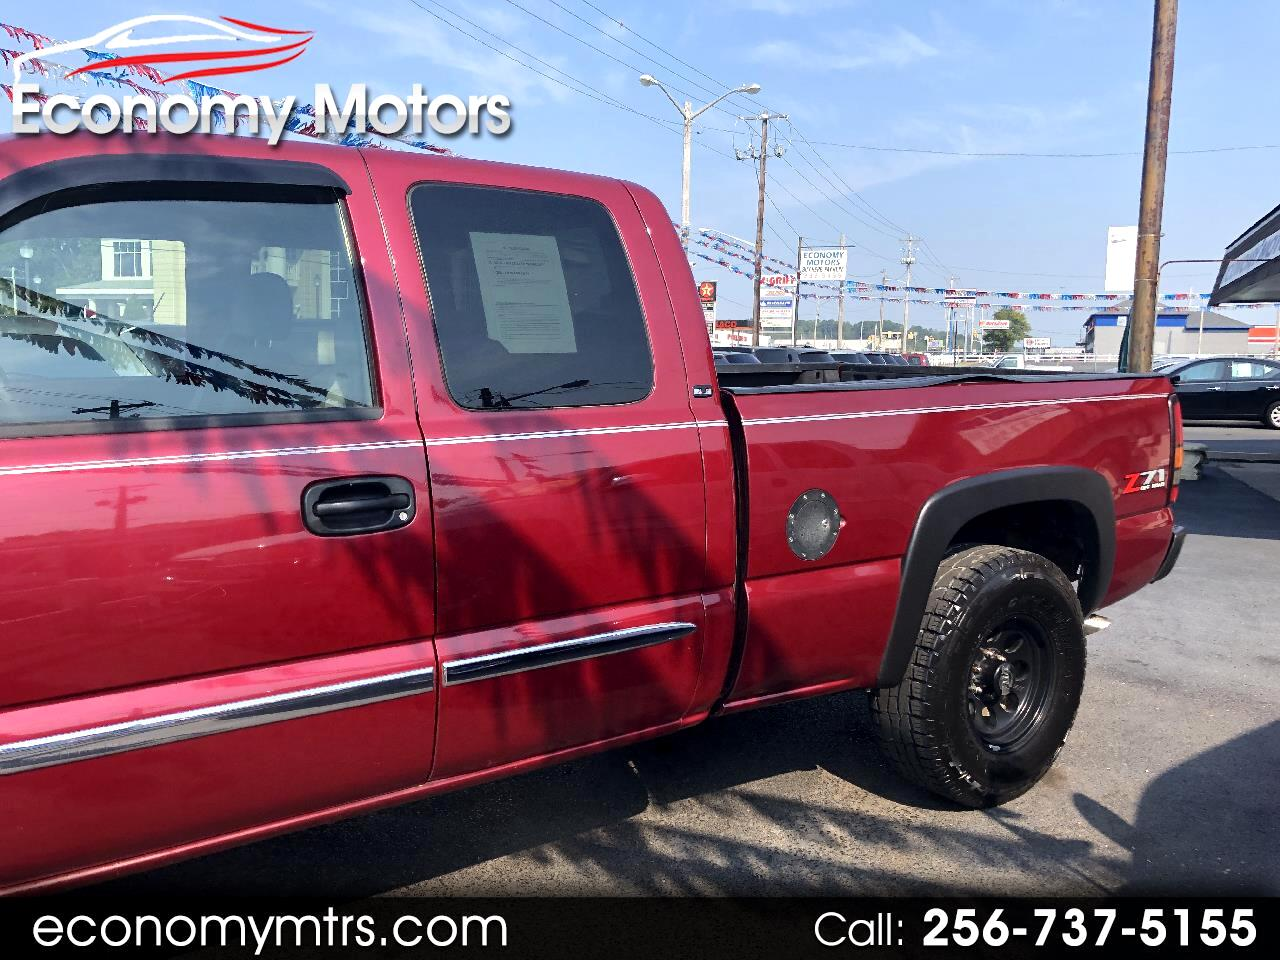 2004 GMC Sierra 1500 Ext. Cab Long Bed 4WD